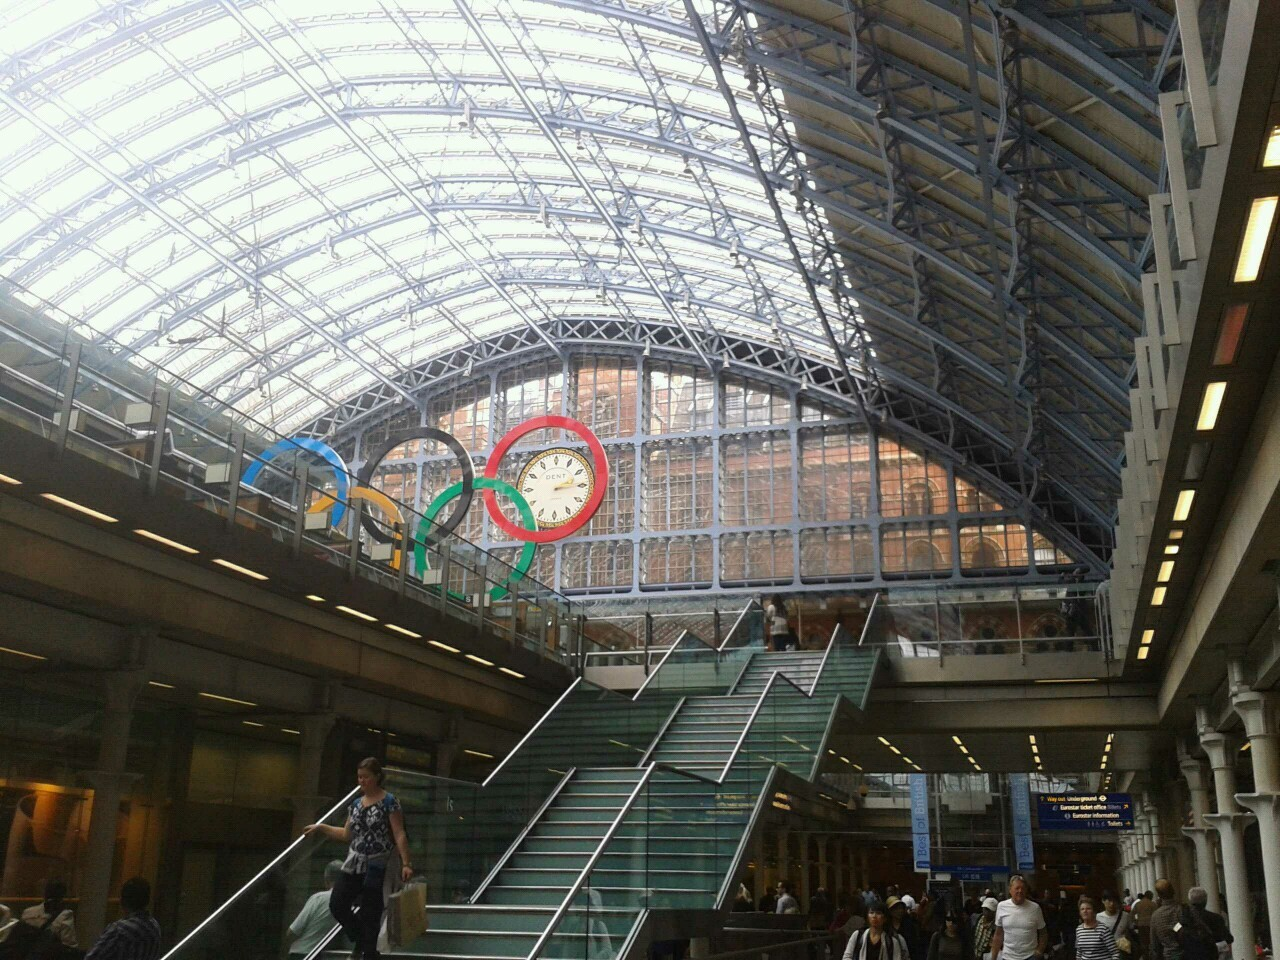 St. Pancras International may be one of the most beautiful train stations ever.